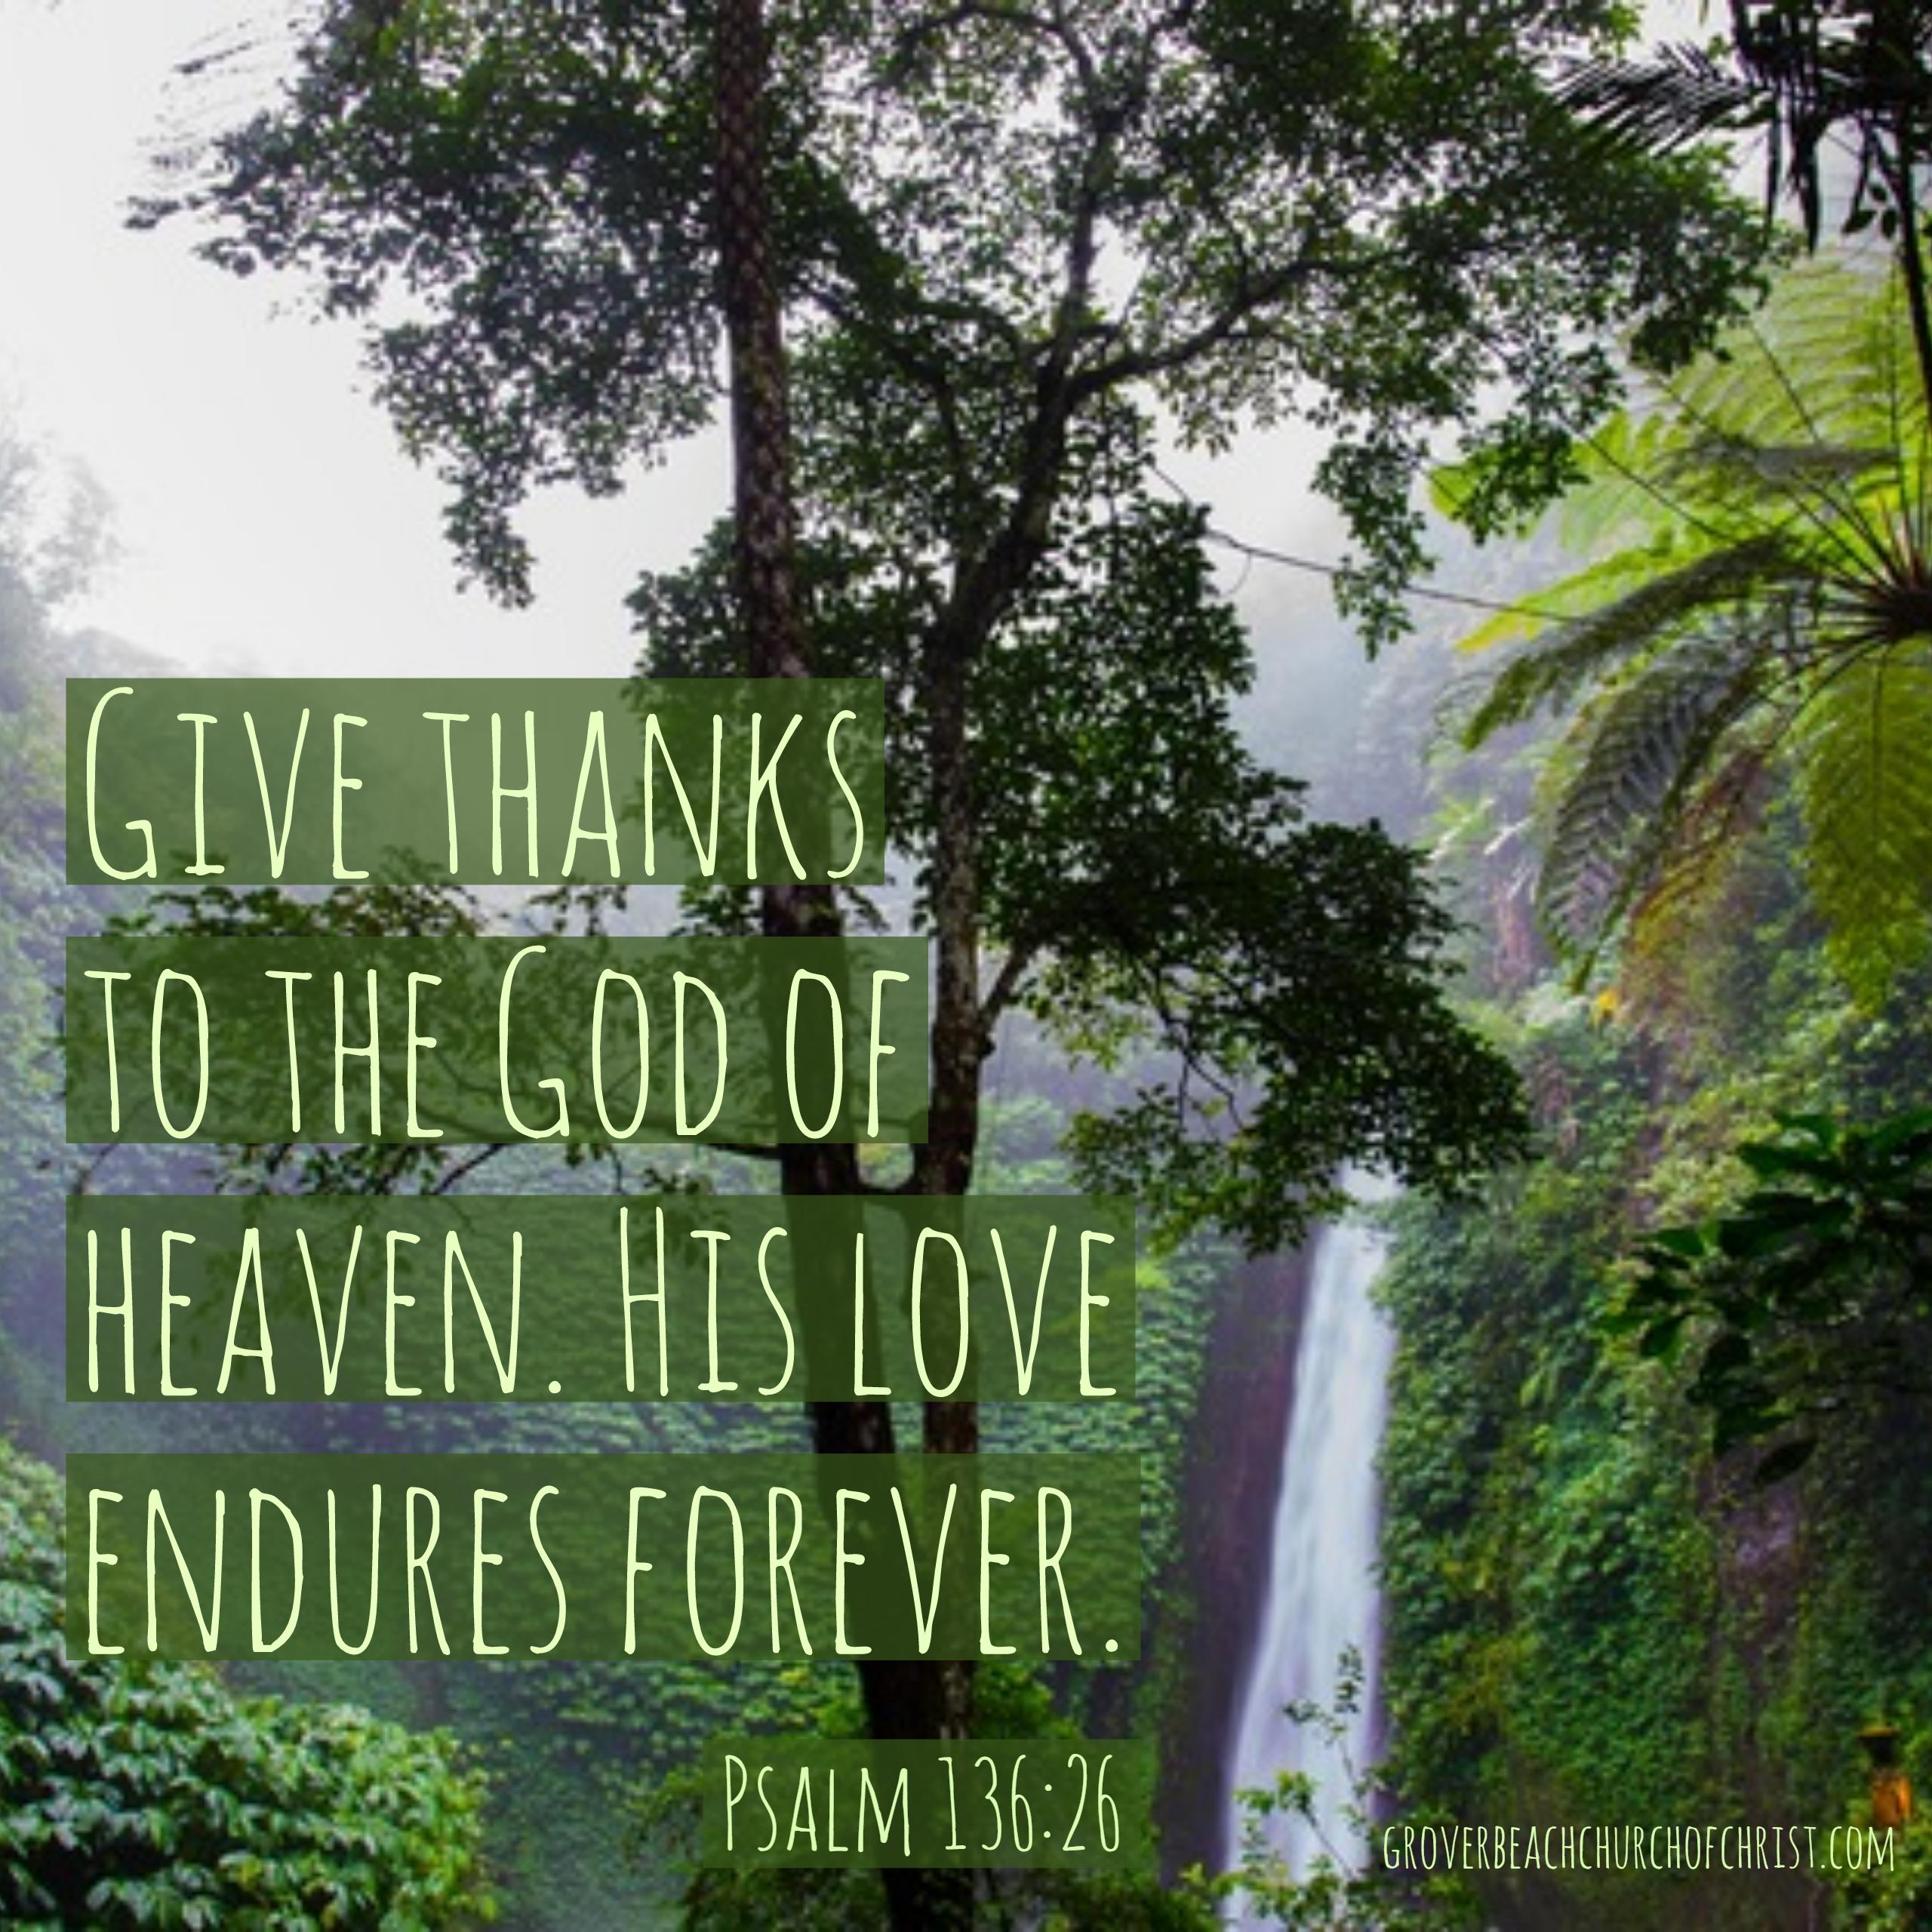 psalm-136-26-give-thanks-to-the-god-of-heaven